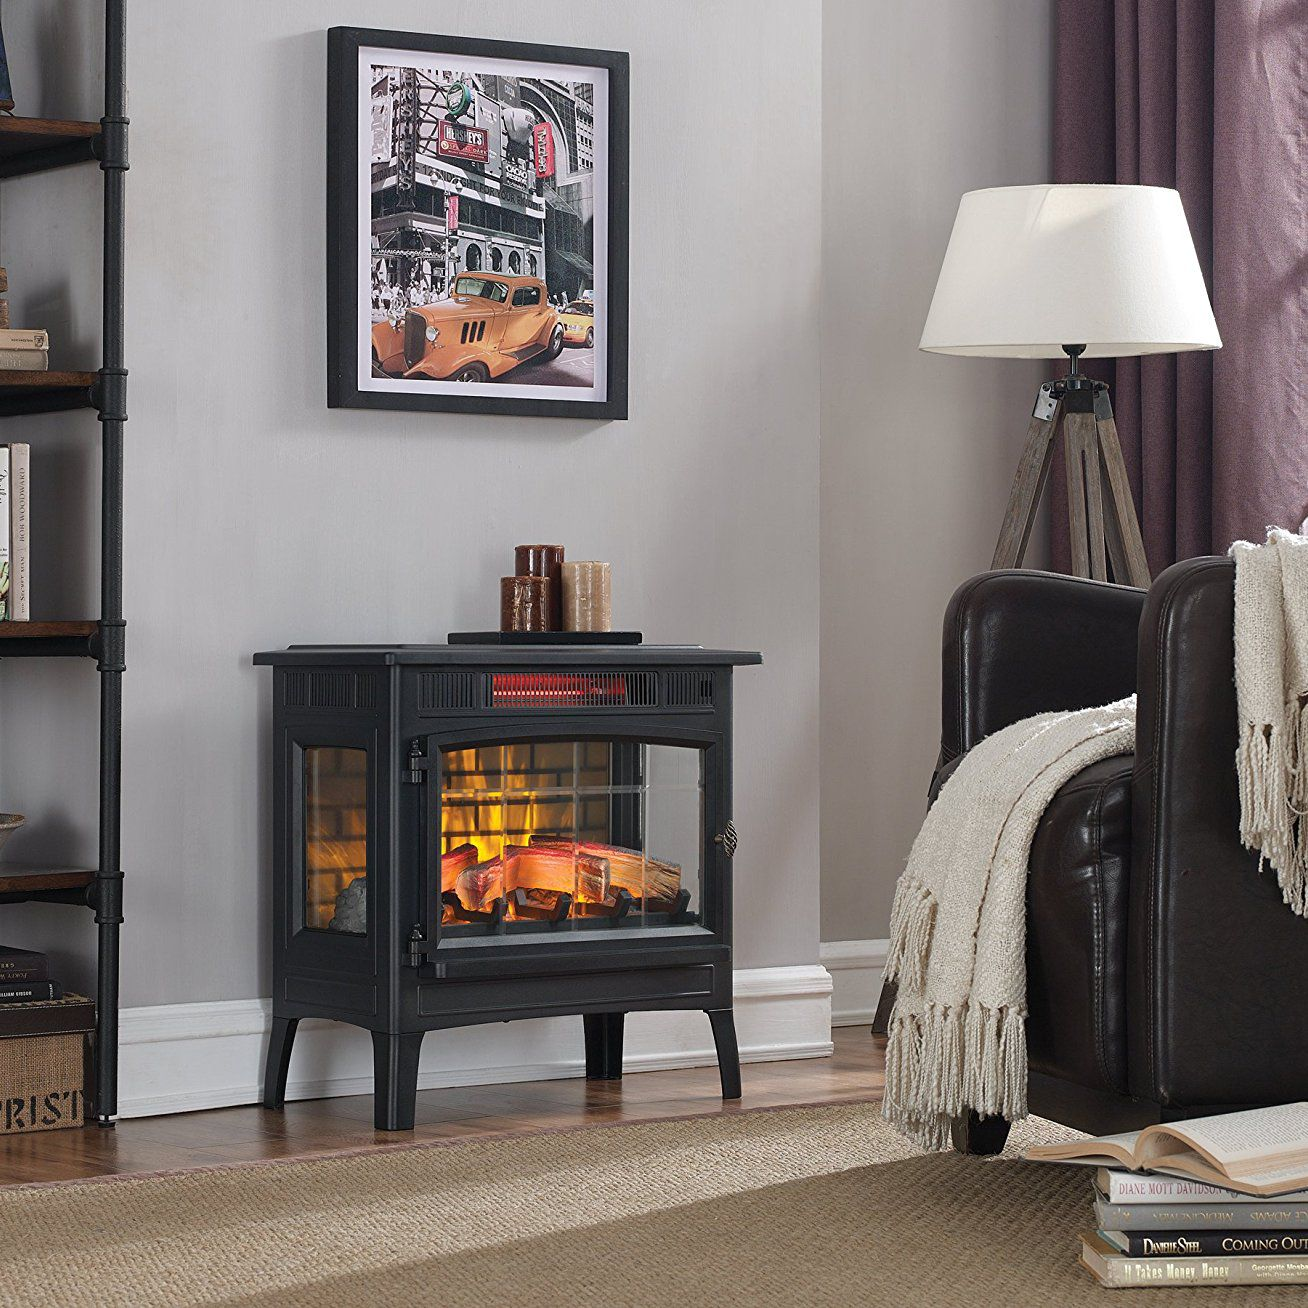 Fine The 7 Best Electric Fireplace Heaters Of 2019 Home Interior And Landscaping Ferensignezvosmurscom